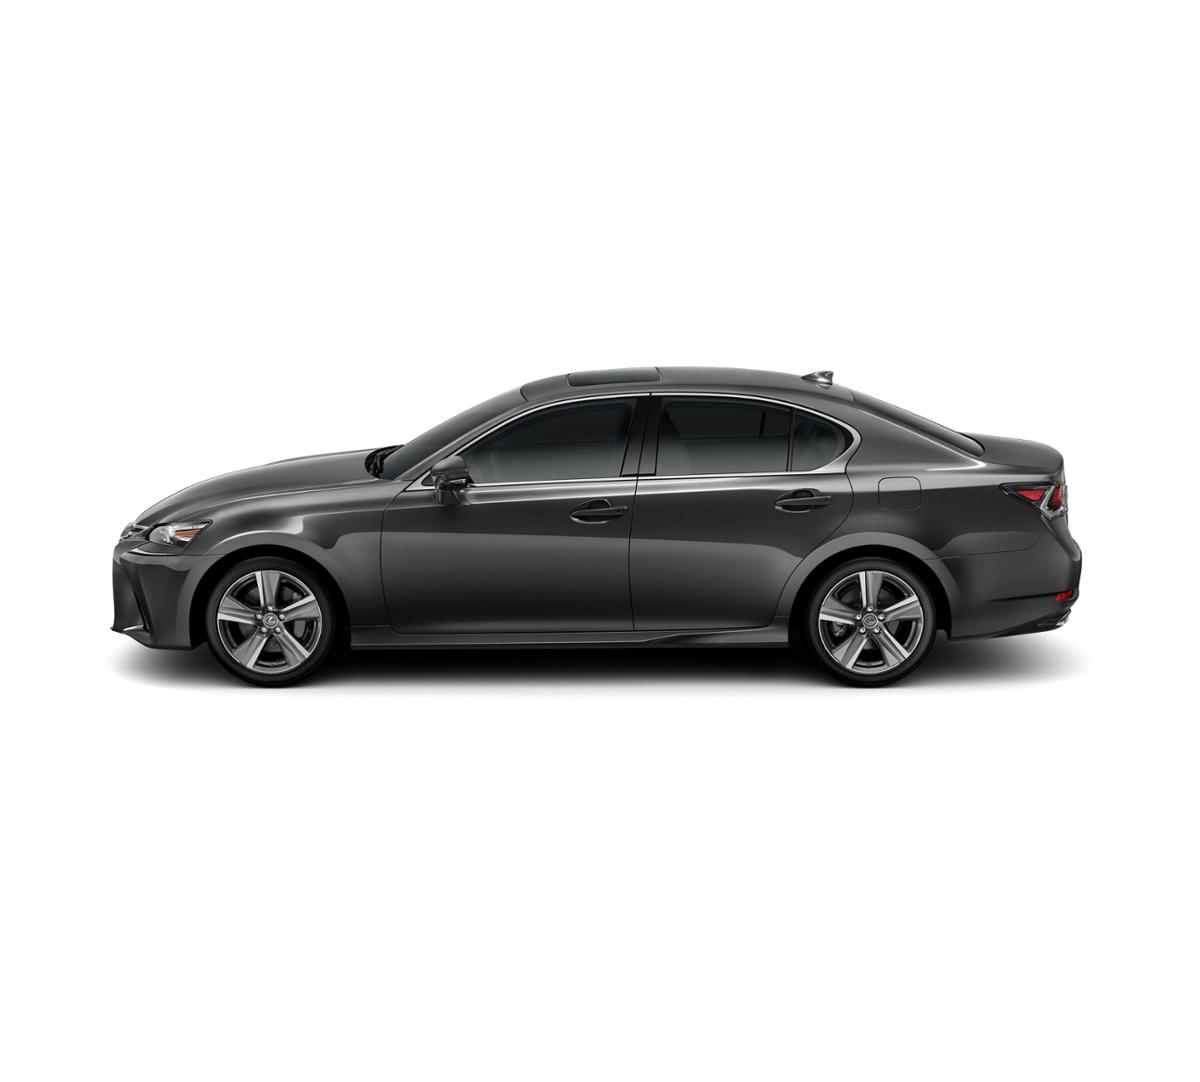 Lexus Gs Lease: New 2018 Lexus GS 350 (Smoky Granite Mica) For Sale In